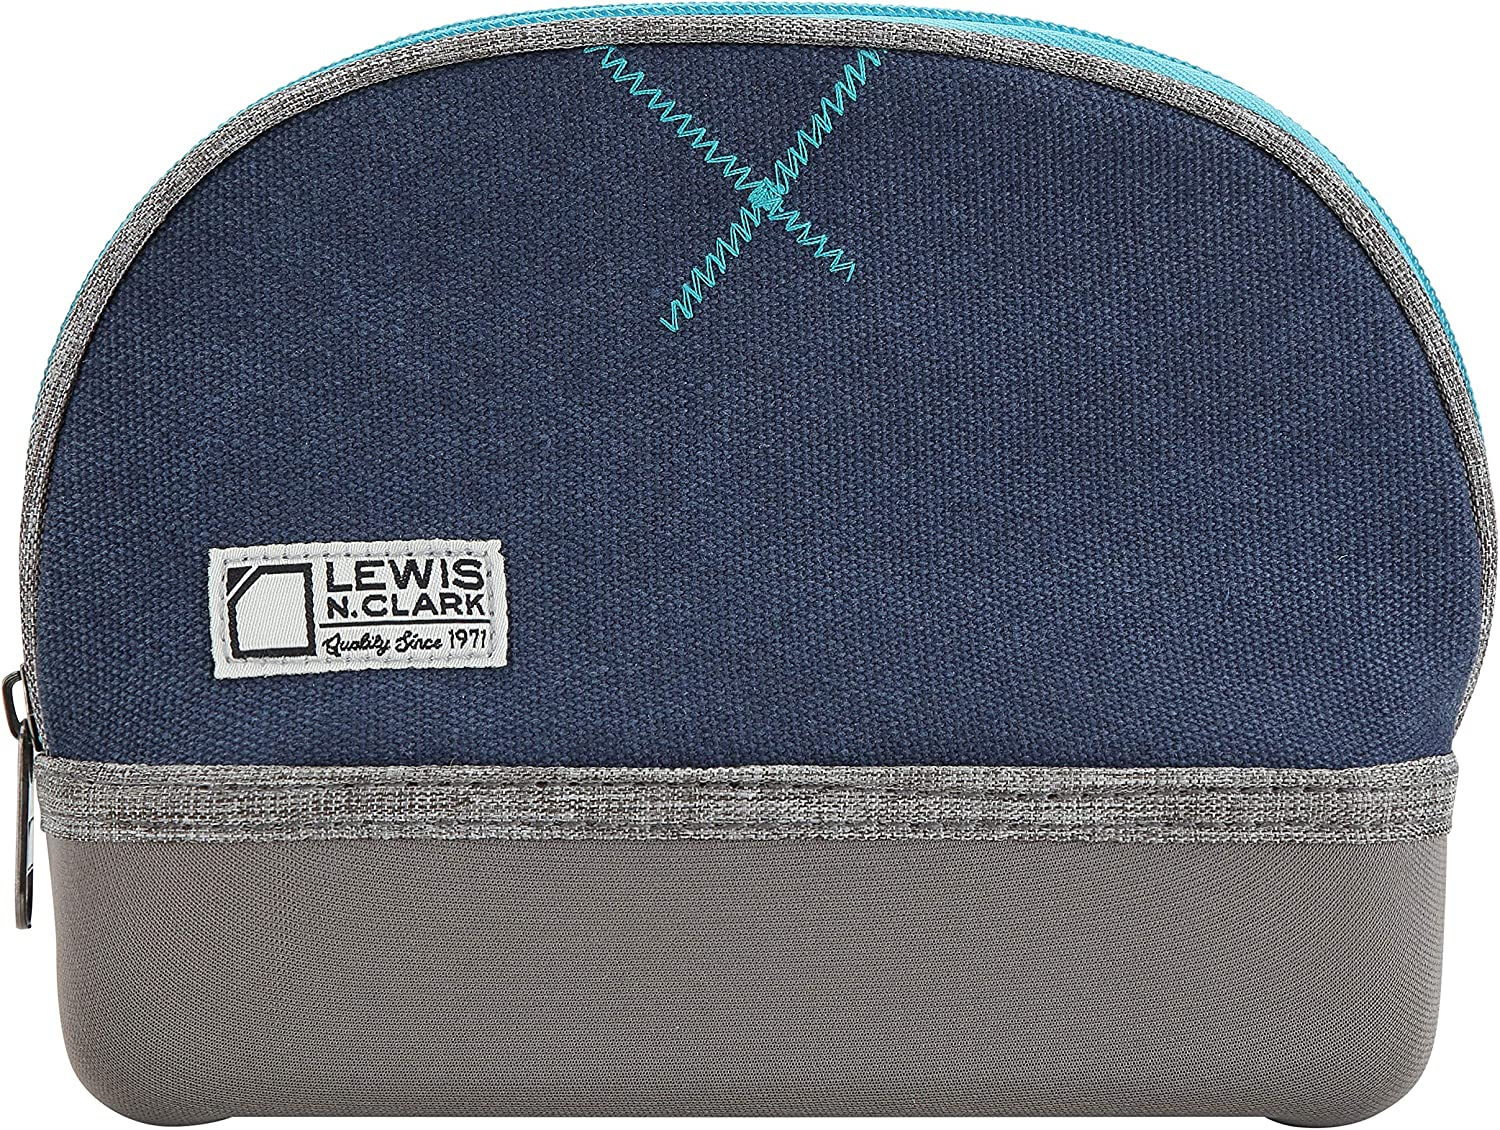 Lewis N. Clark Travelflex Toiletry Kit, Makeup Bag, Shower Caddy + Travel Organizer for Luggage, Carry-on or Suitcase, Blue, One_Size